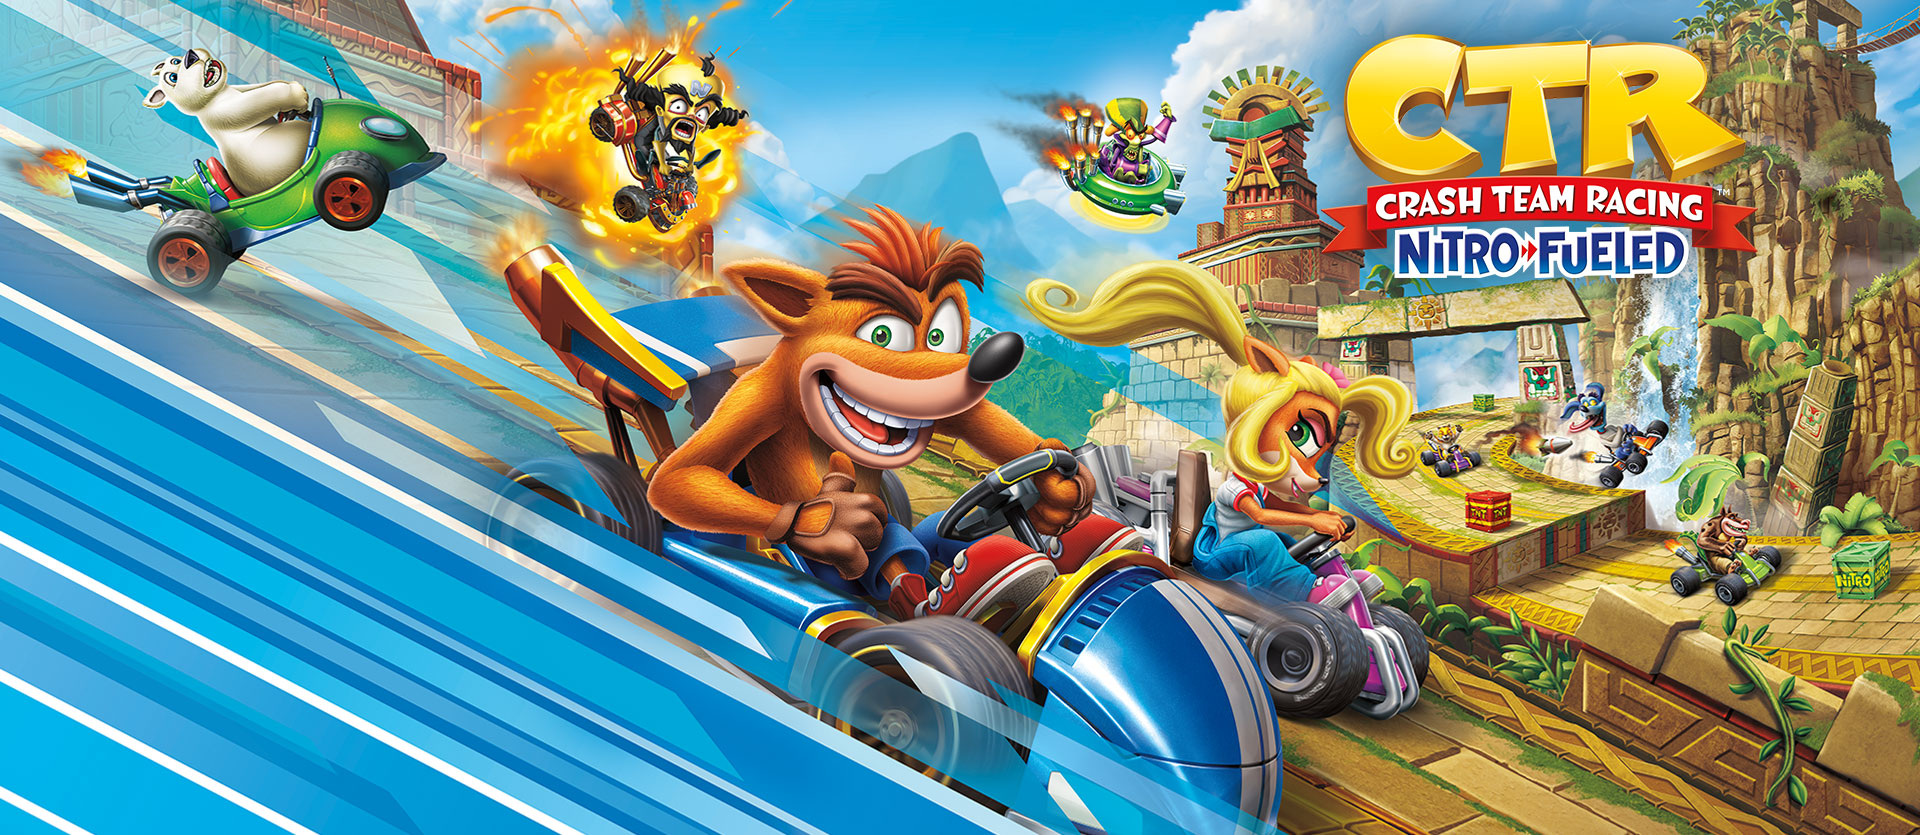 CTR Crash Team Racing Nitro Fueled, Crash Bandicoot and other characters in vehicles on jungle track